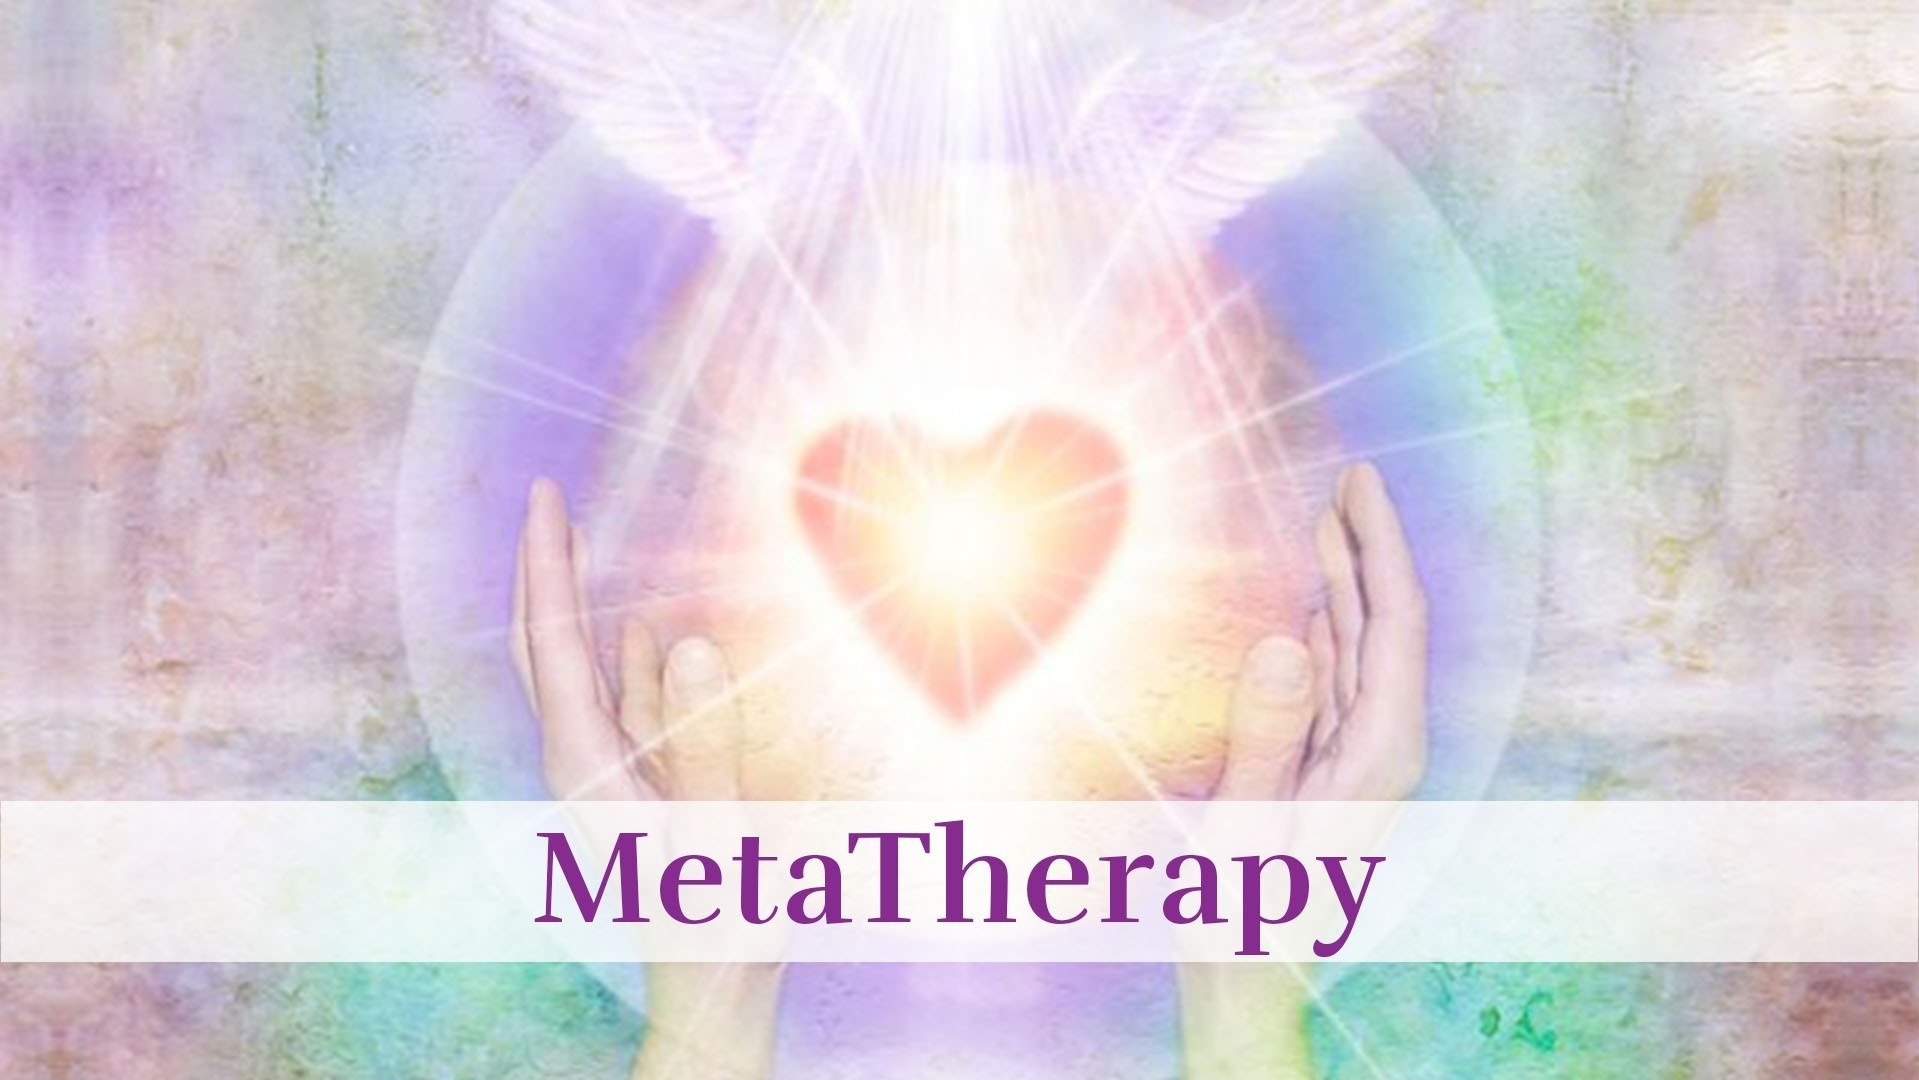 MetaTherapy is my signature work for gently resolving traumas and using the quantum field.